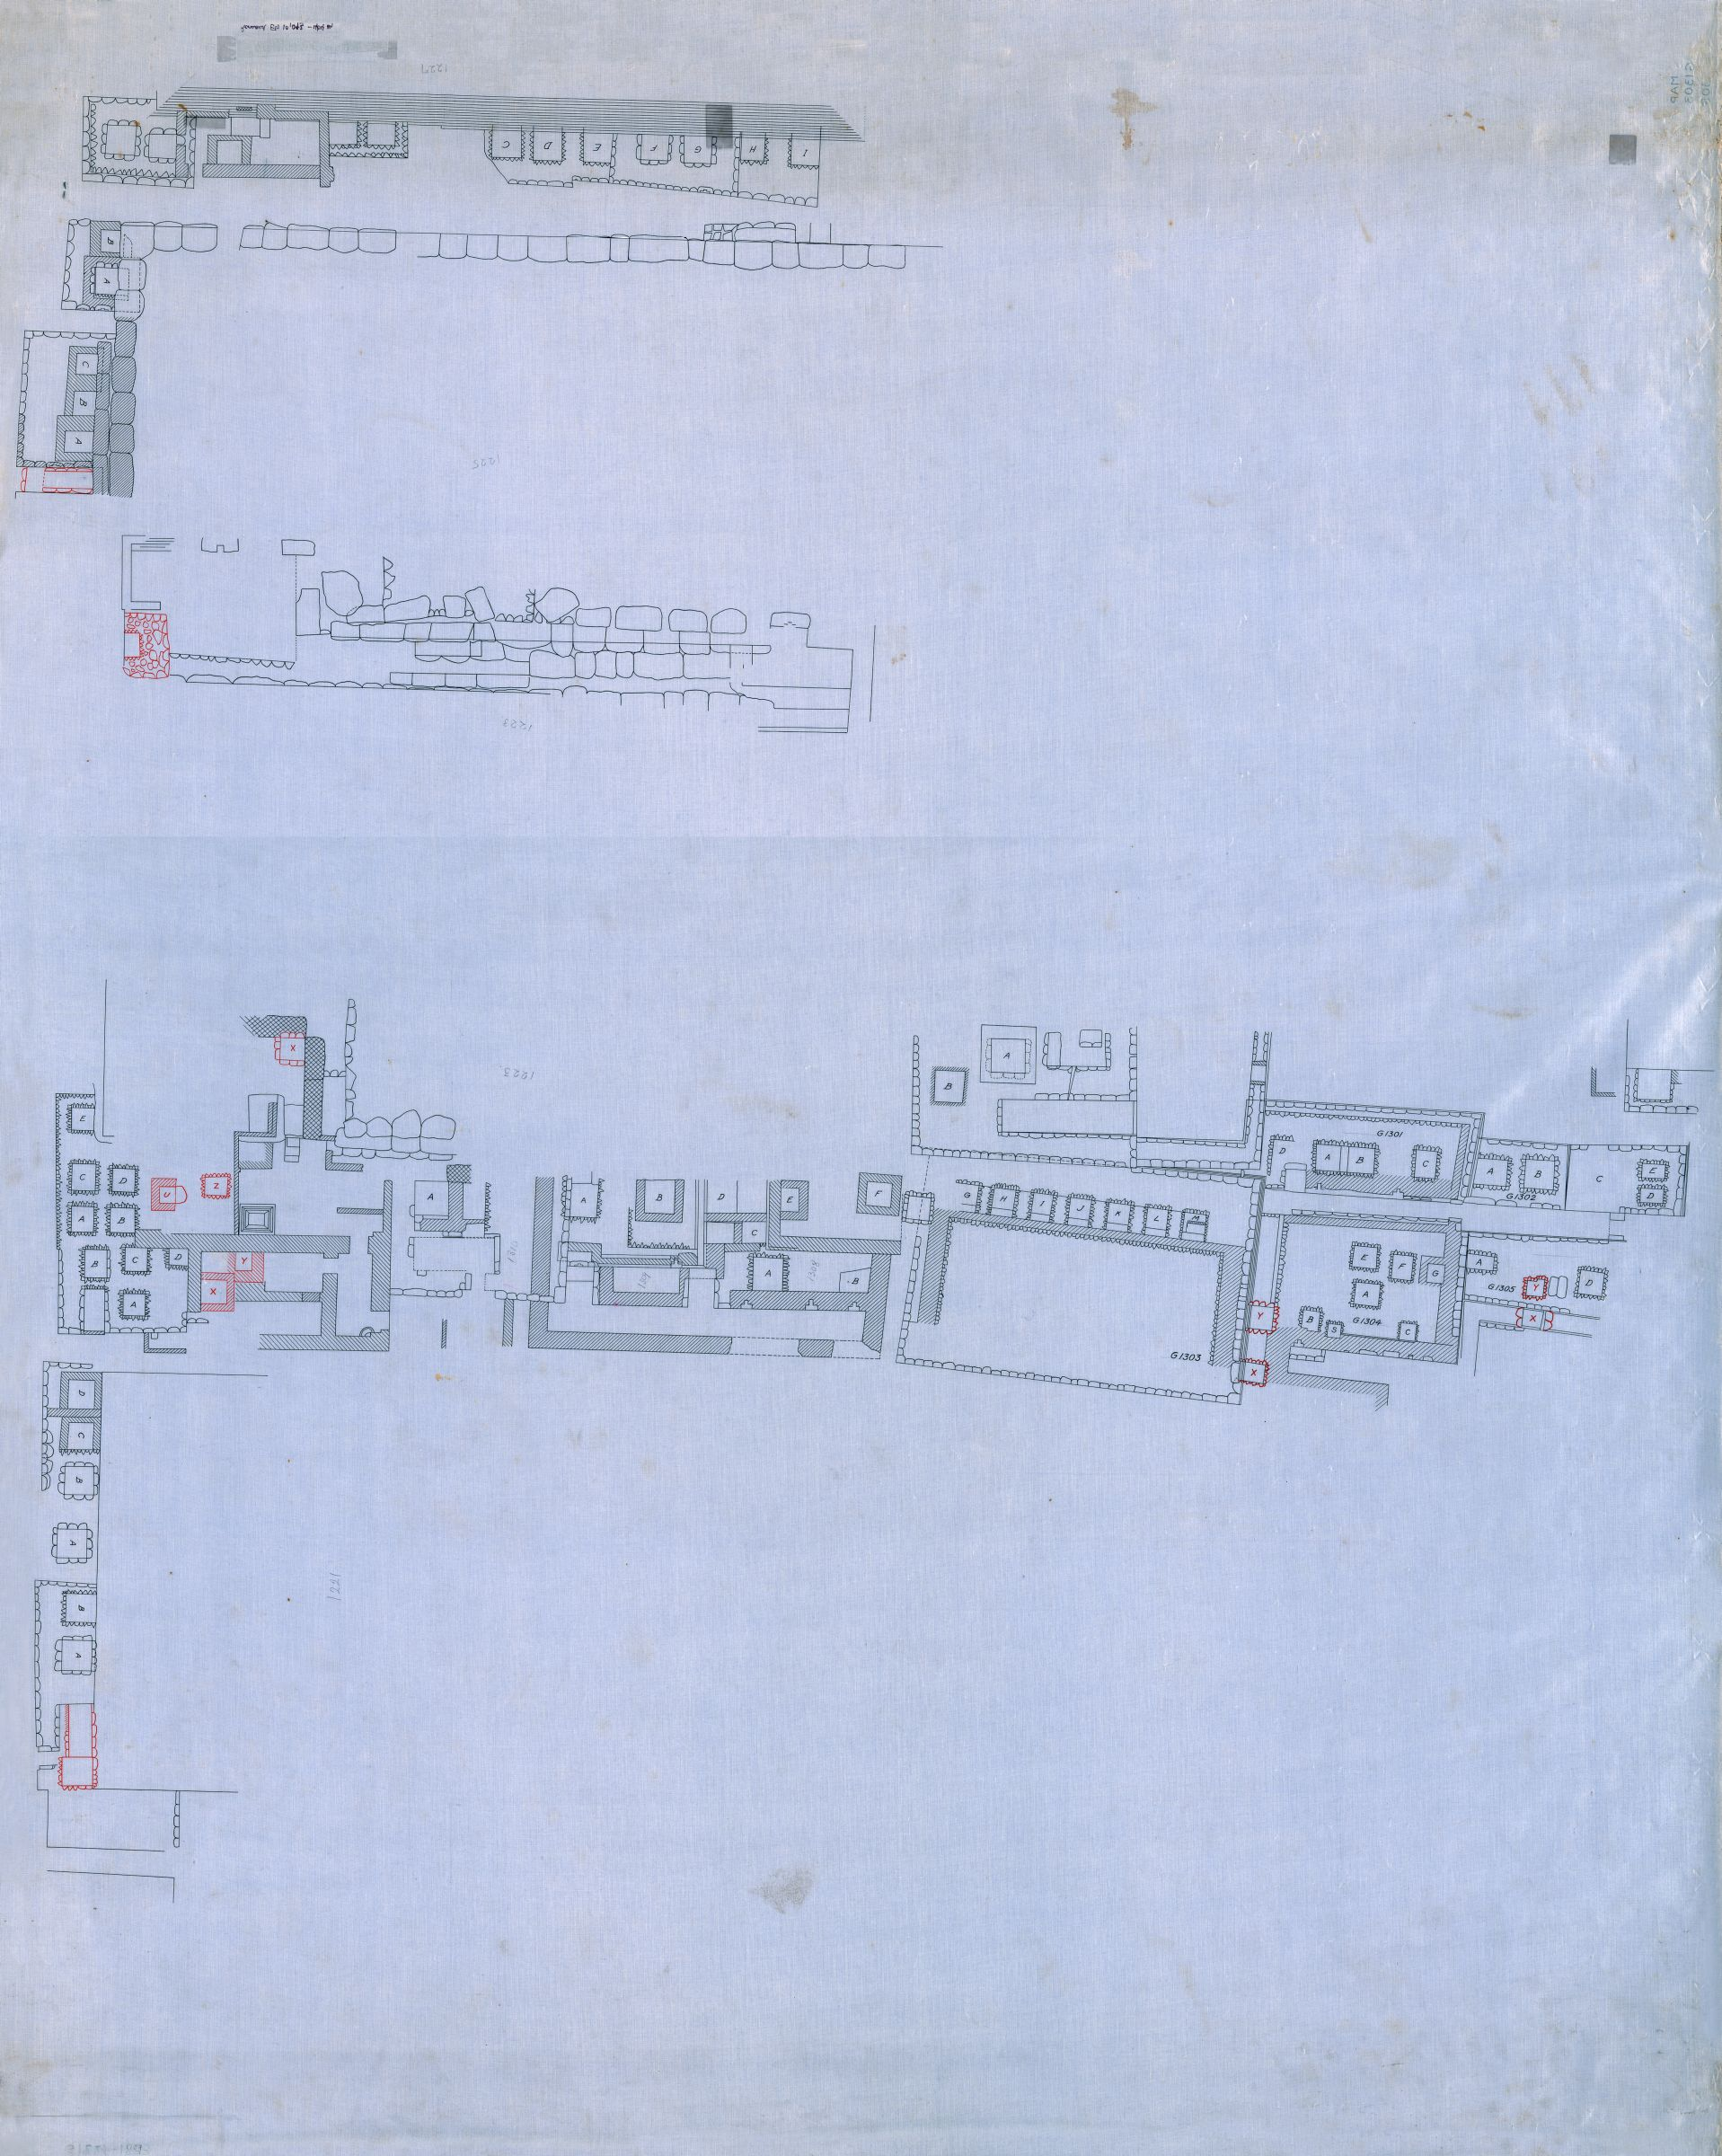 Maps and plans: Plan of G 1223 - G 1227, G 1301 - G 1310